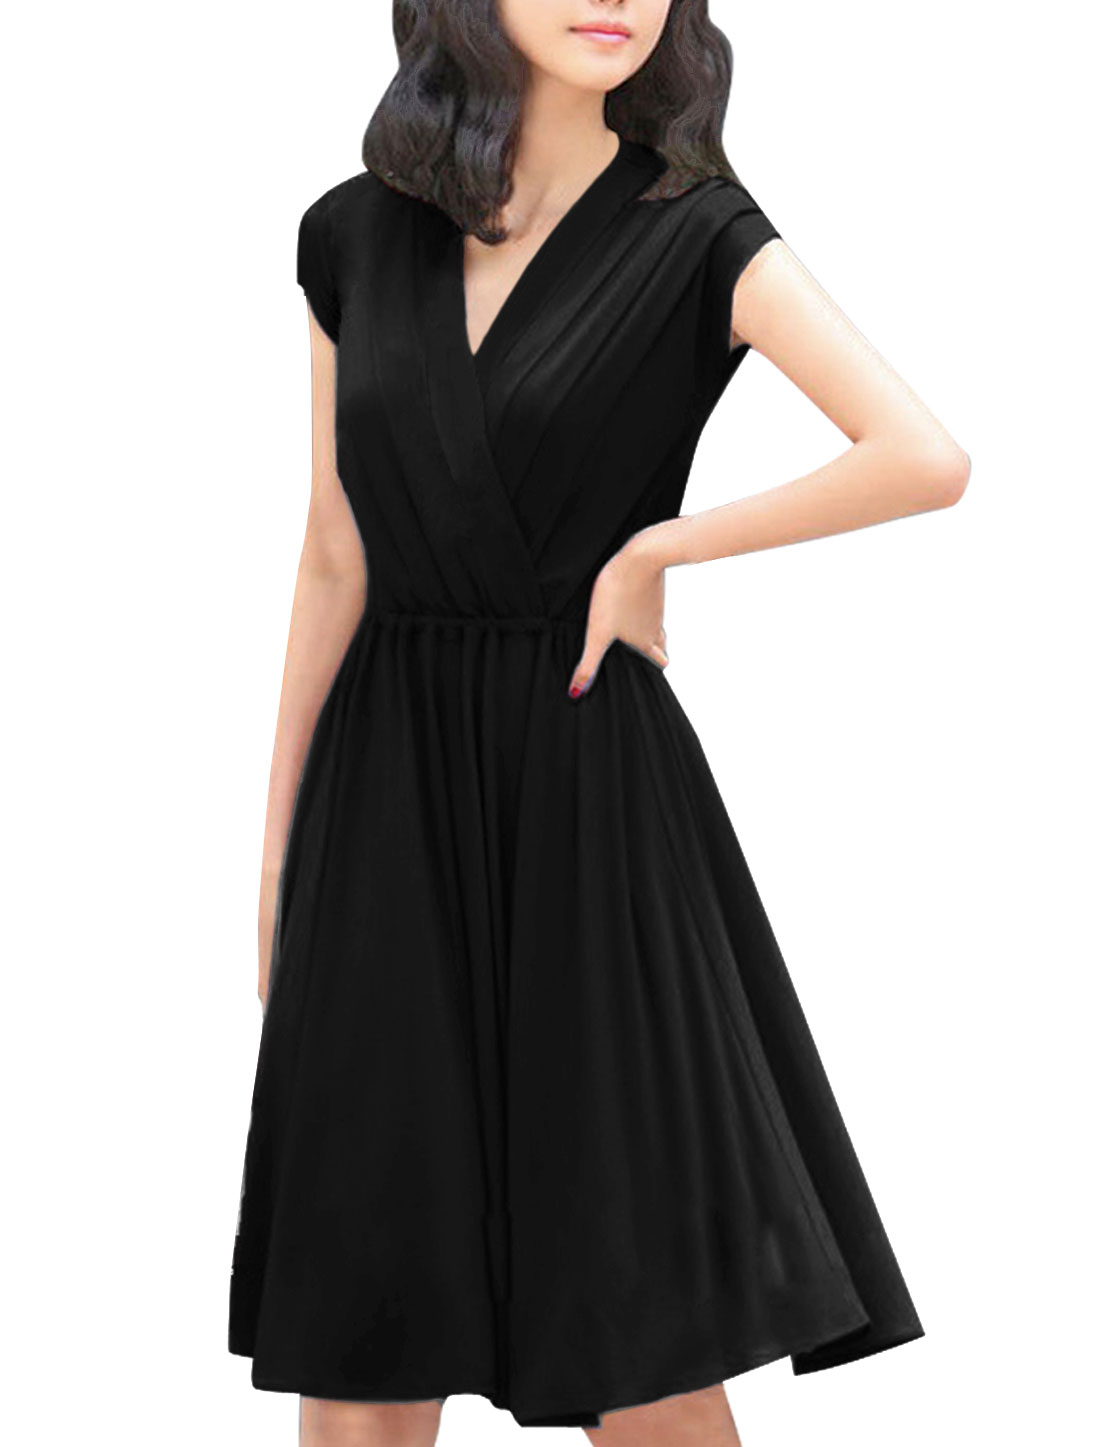 Woman Solid Color Black Stretchy Knee-Length Dress L